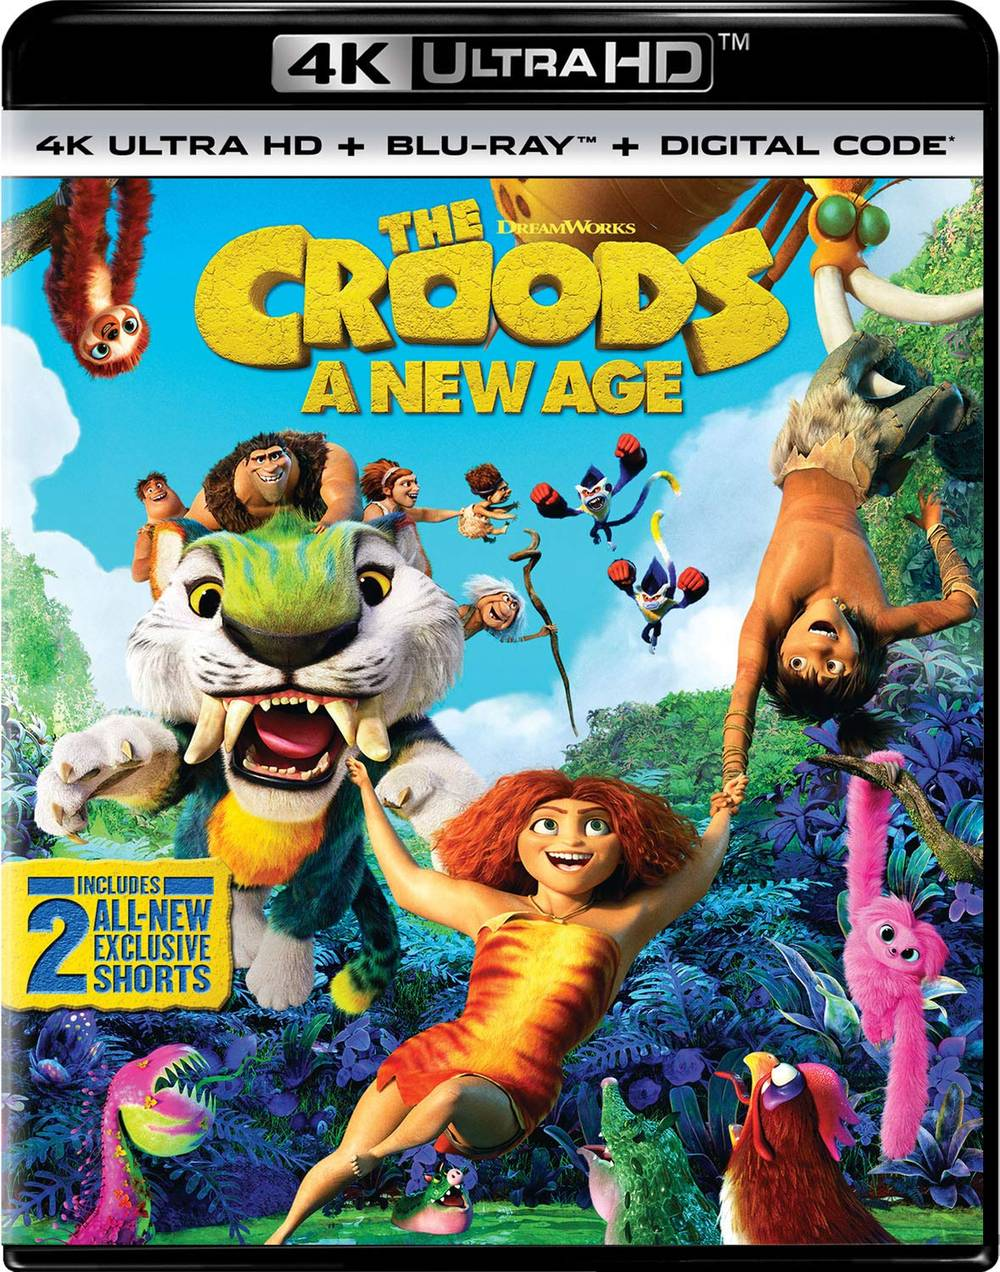 The Croods [Movie] - The Croods: A New Age